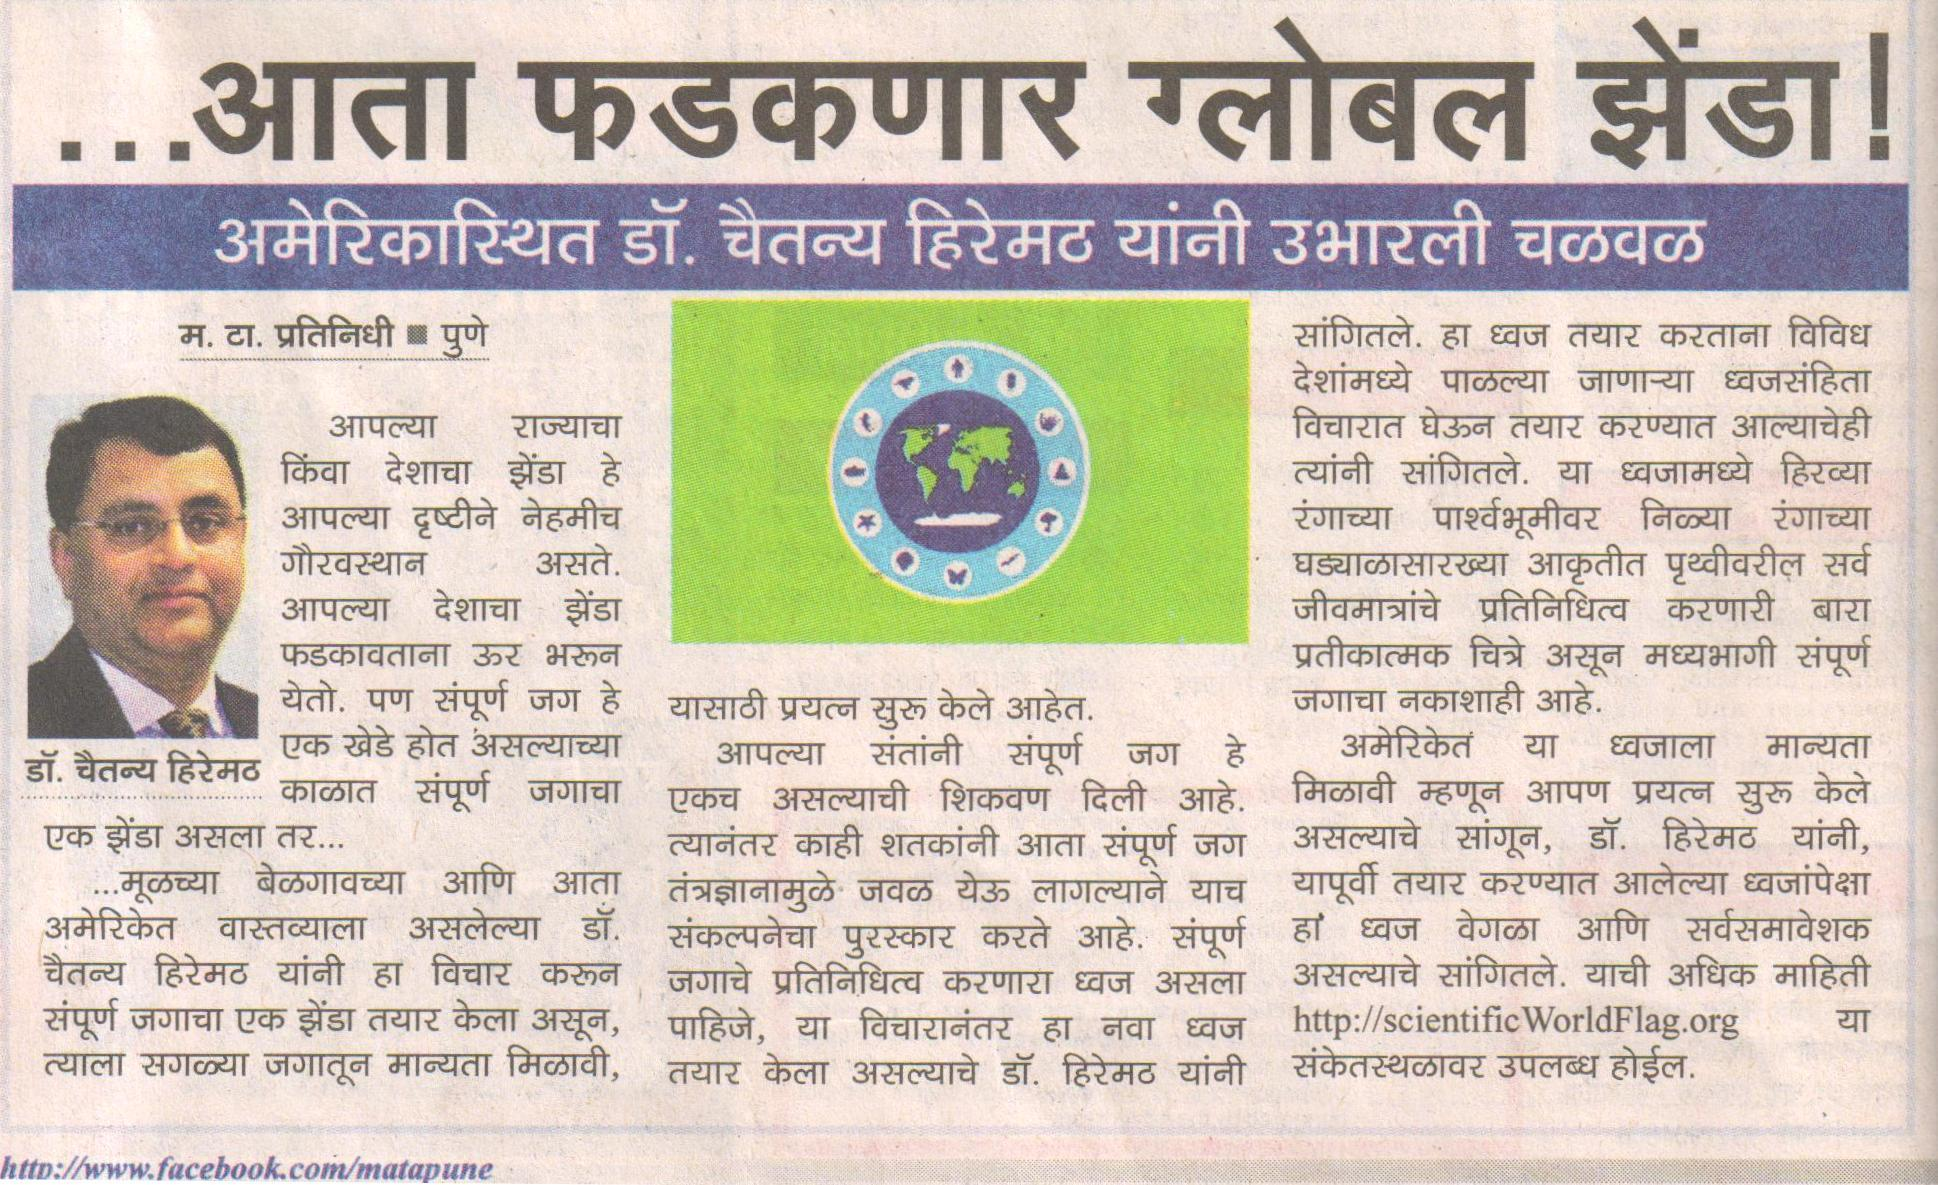 NewsPaper_MaharashtraTimes_16Sep2011